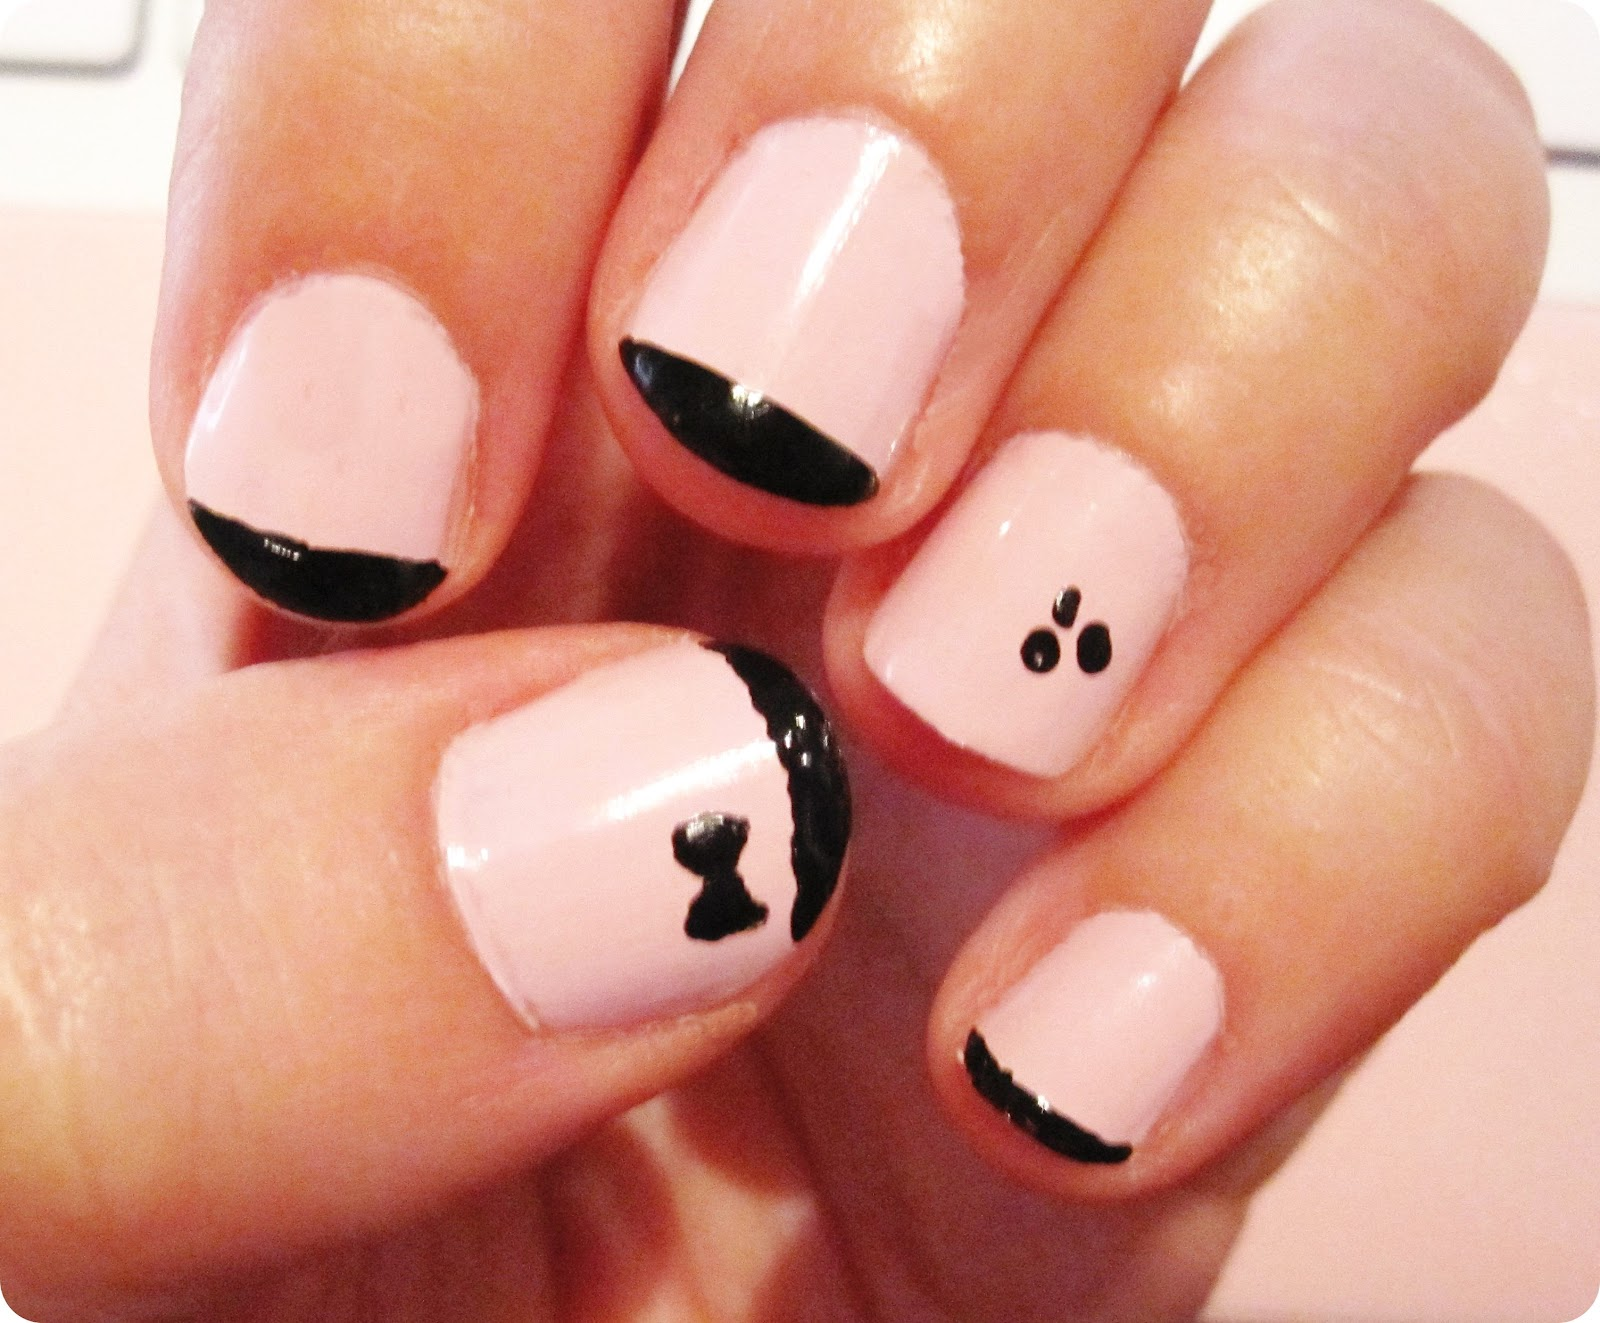 You are a really it girl manicura francesa black pink - Manicura francesa colores ...